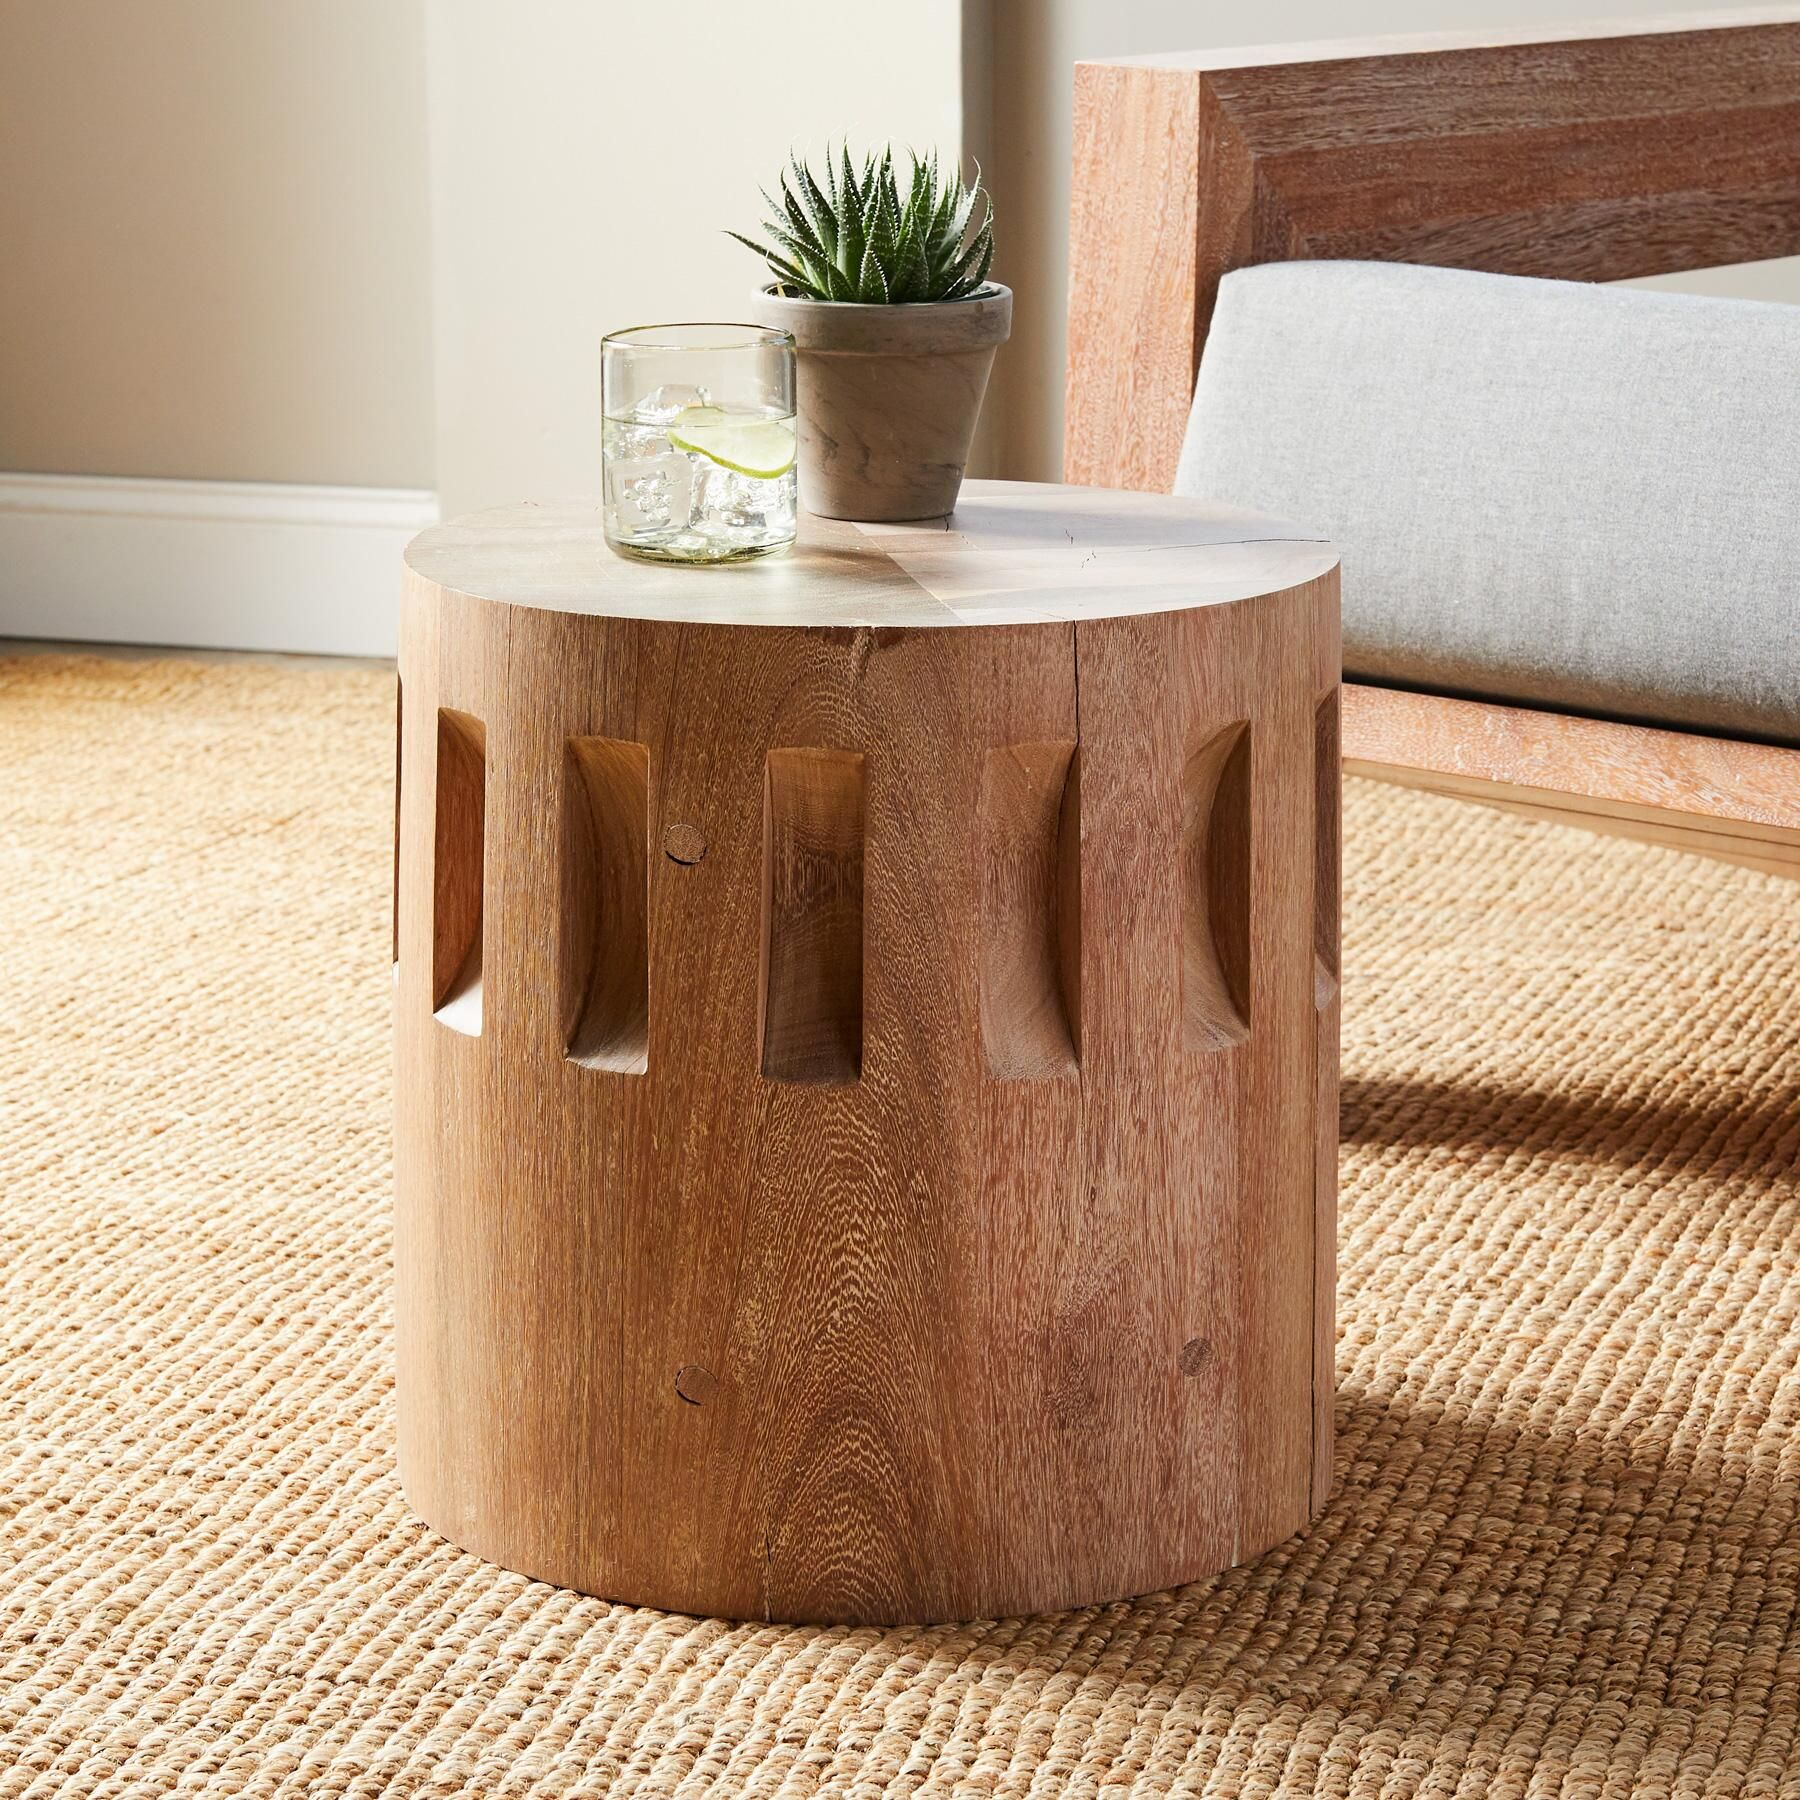 Cascadia Side Table | Robert Redford's Sundance Catalog in ... on Cascadia Outdoor Living Spaces id=18918